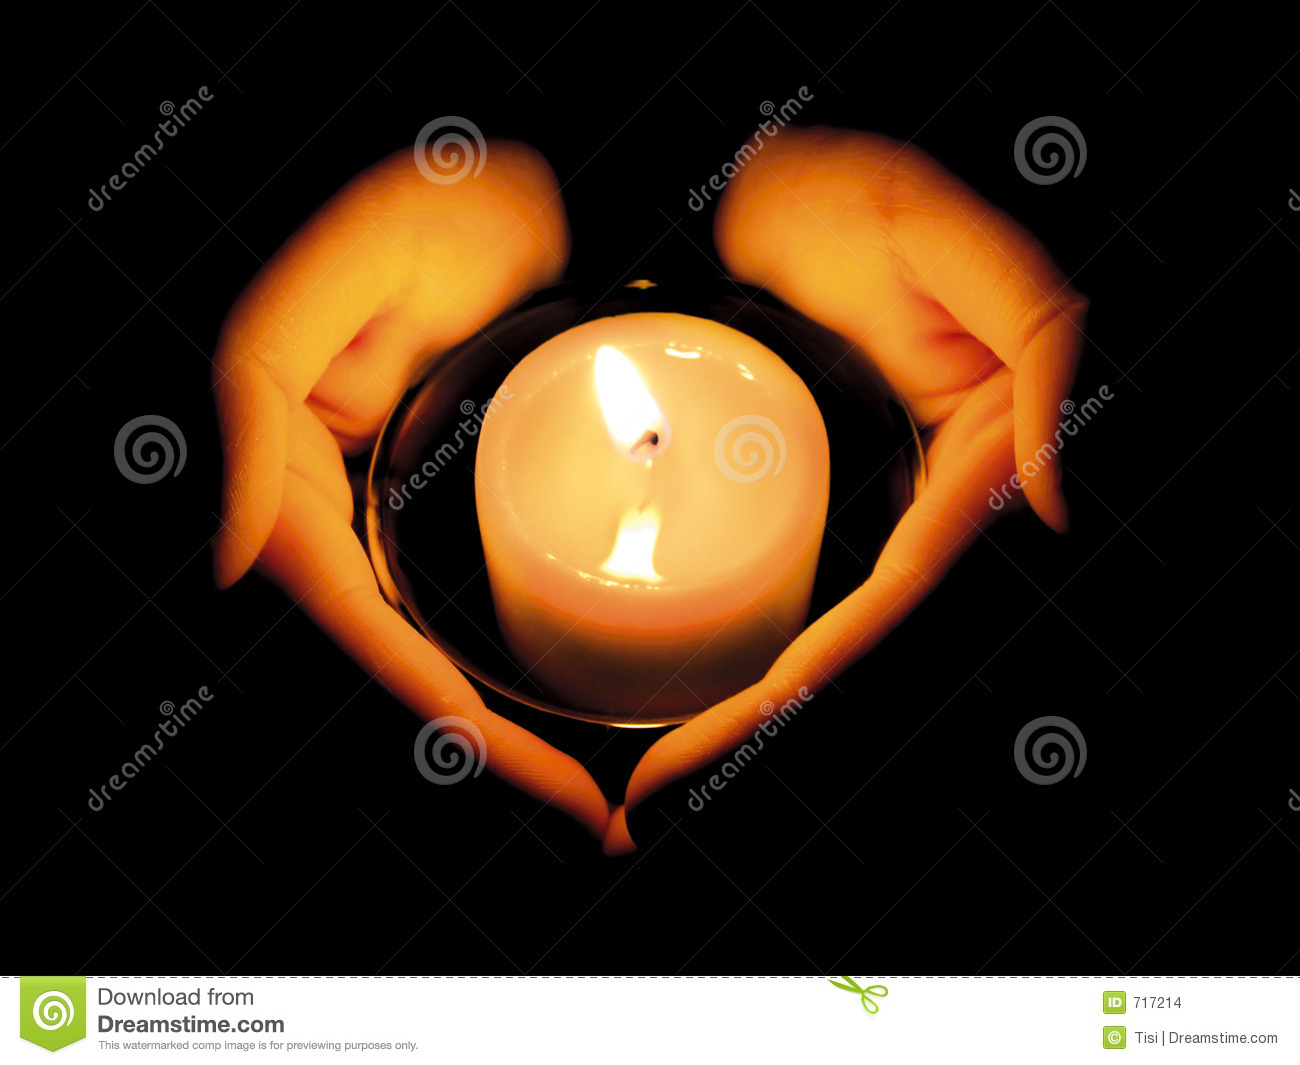 WOMAN S HANDS LIT BY A CANDLE